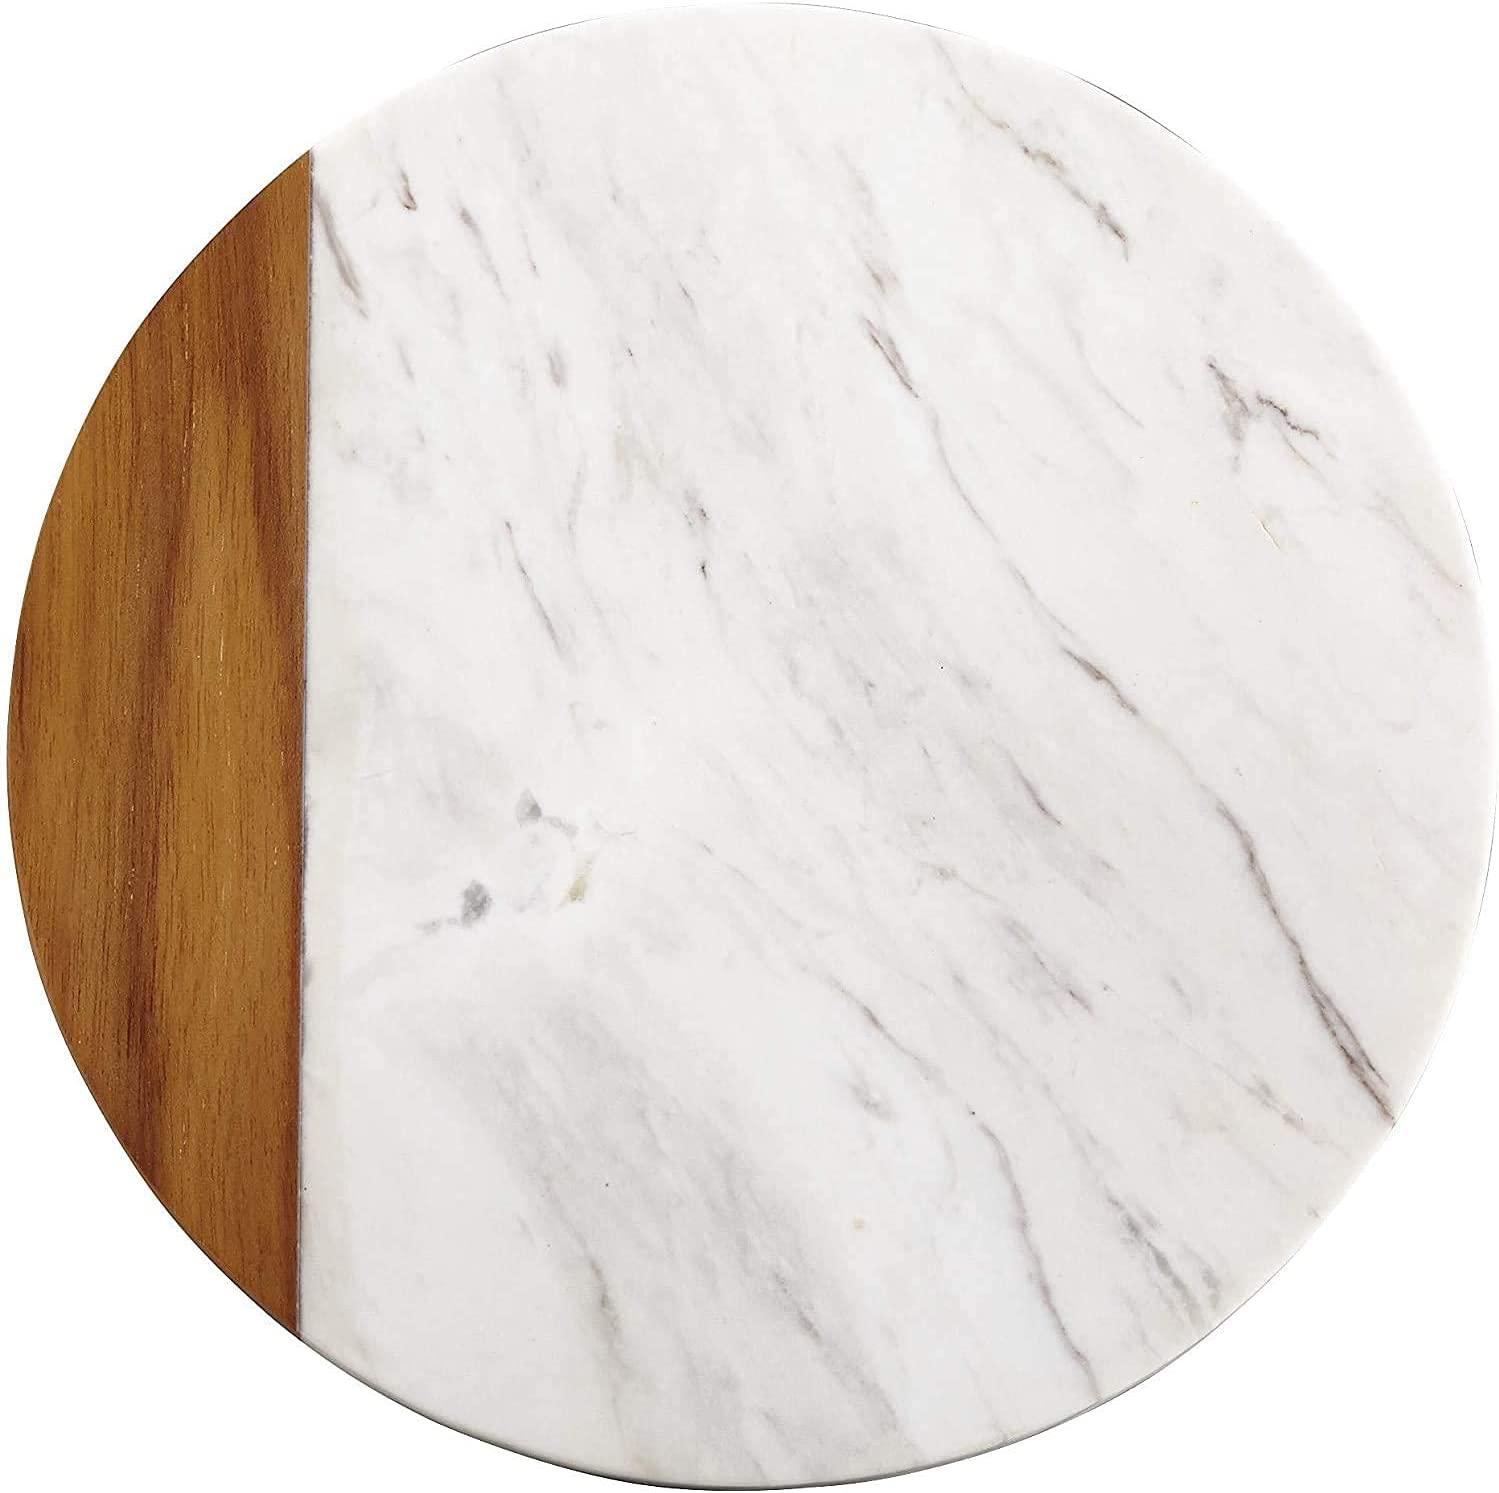 Marble White Cheese Daily bargain sale Cutting Charcuterie Ranking integrated 1st place Board